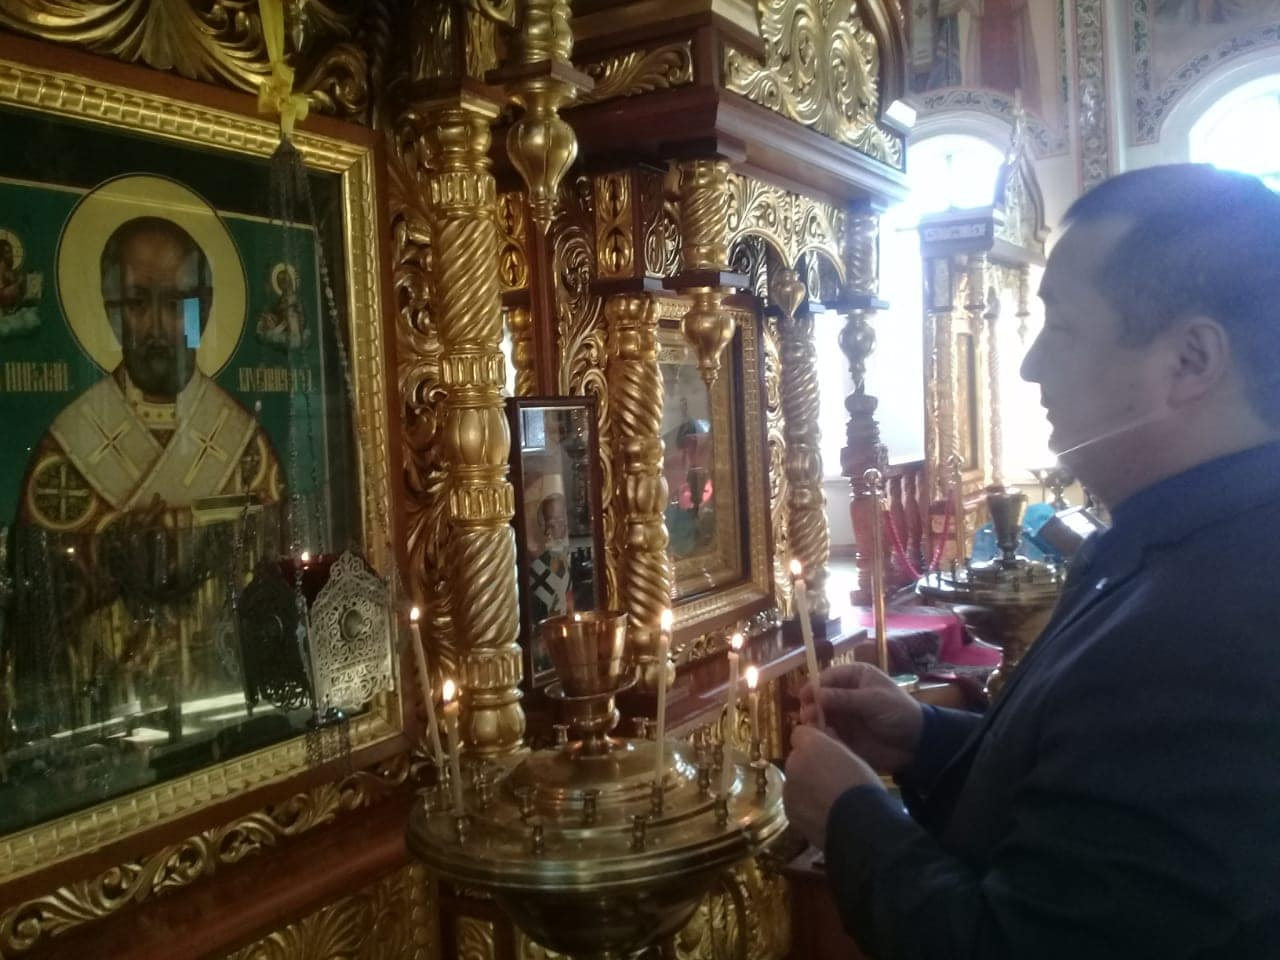 Mr. Serikhzan Bilash, the famous dissident, a Muslim, in an Orthodox church in Almaty, Kazakhstan. An important testimony